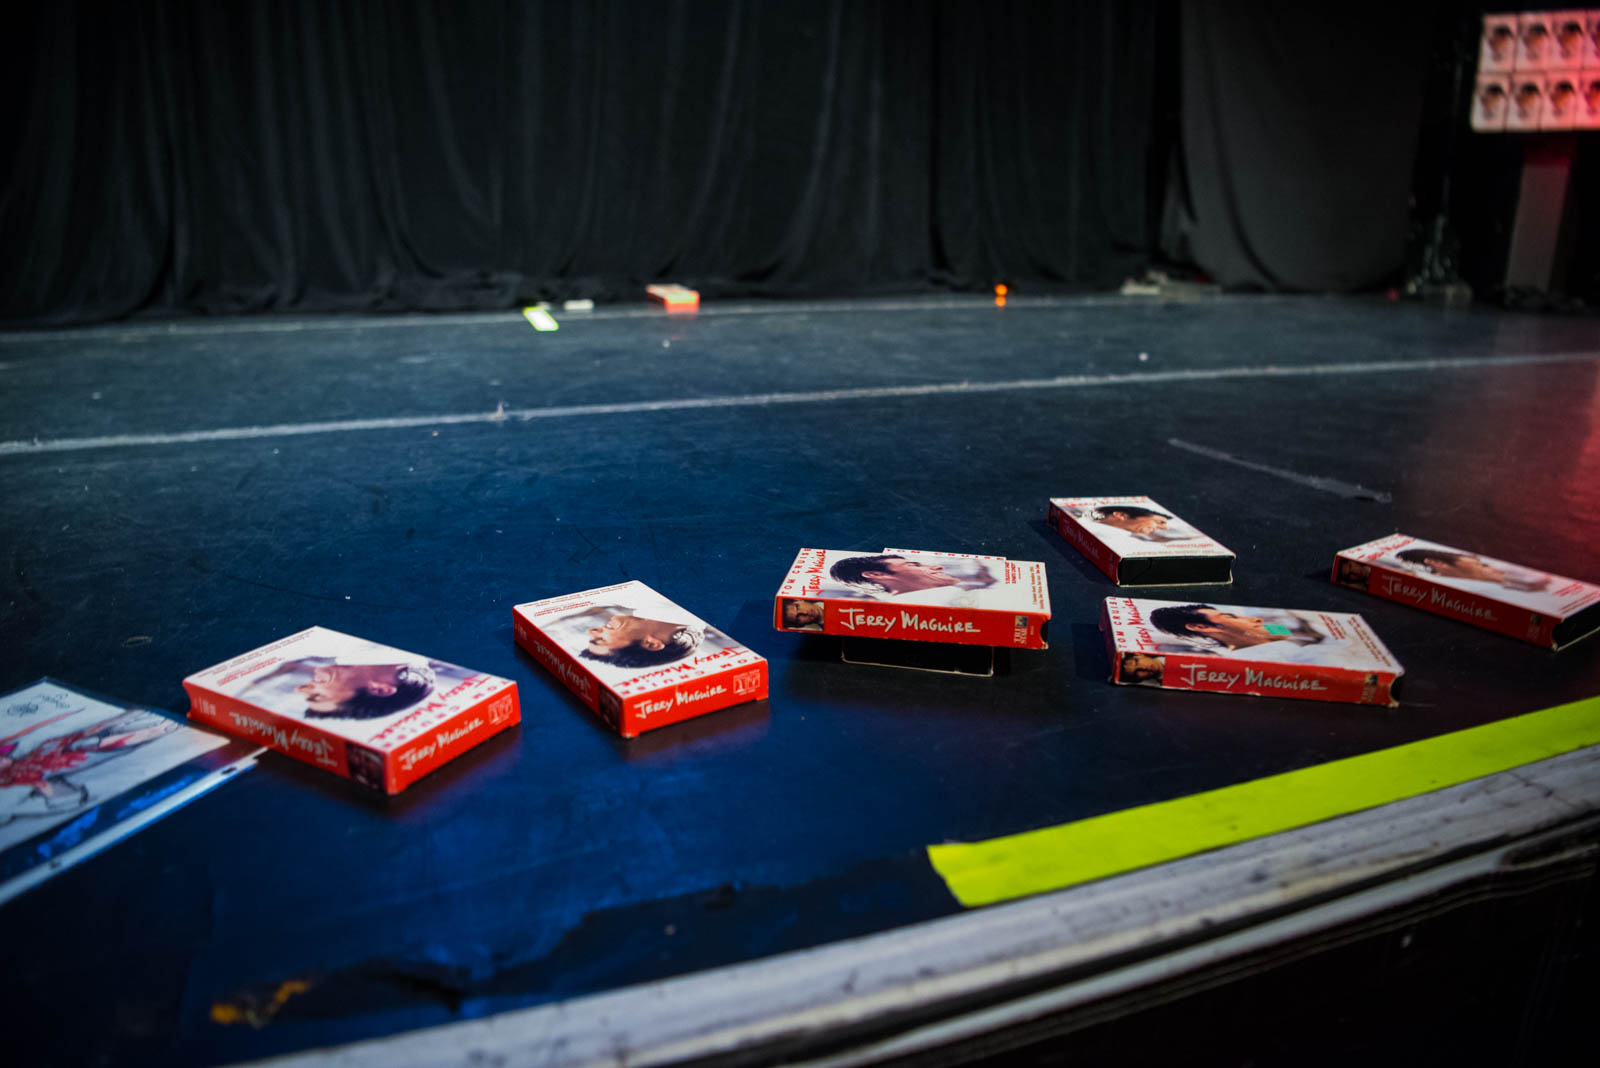 Seven copies of  Jerry Maguire  given to The Great Satan at Gramercy Theatre on Wednesday, September 5, 2018.